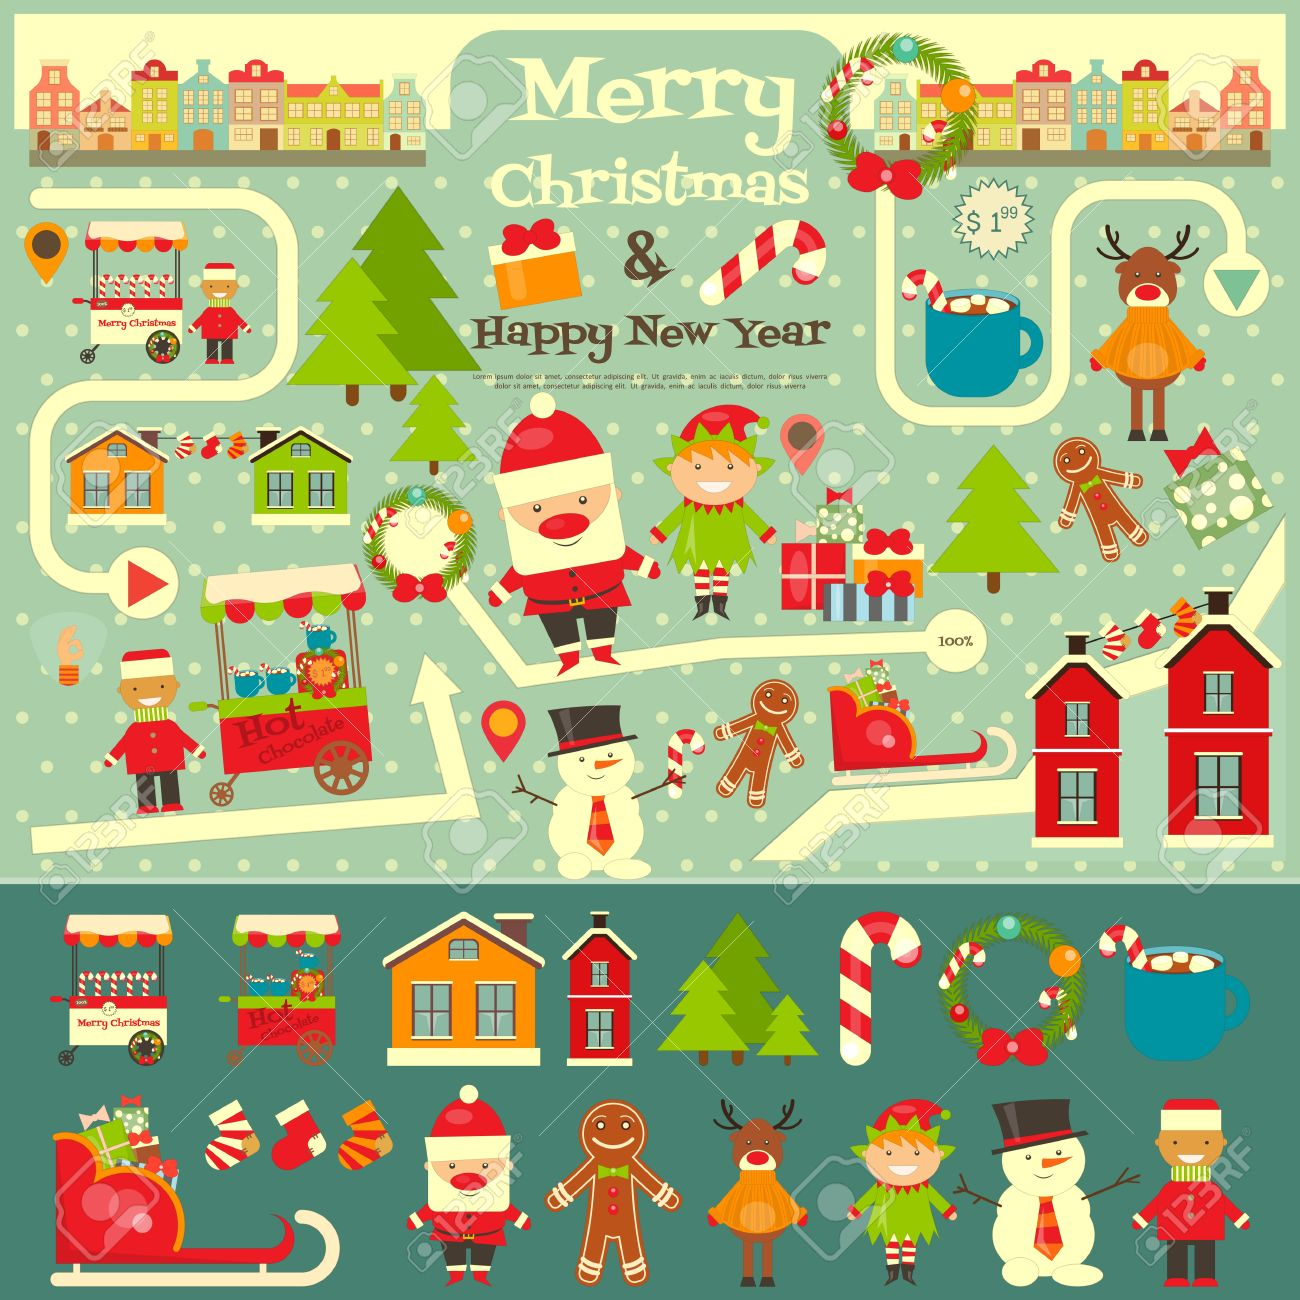 Christmas characters on City Map. Santa Claus on Infographic.. on oolitic map, oats map, tell city map, gulf of antalya on a map, headless horseman map, splashin safari map, santa and his reindeer, north pole map, track santa map, christmas map,